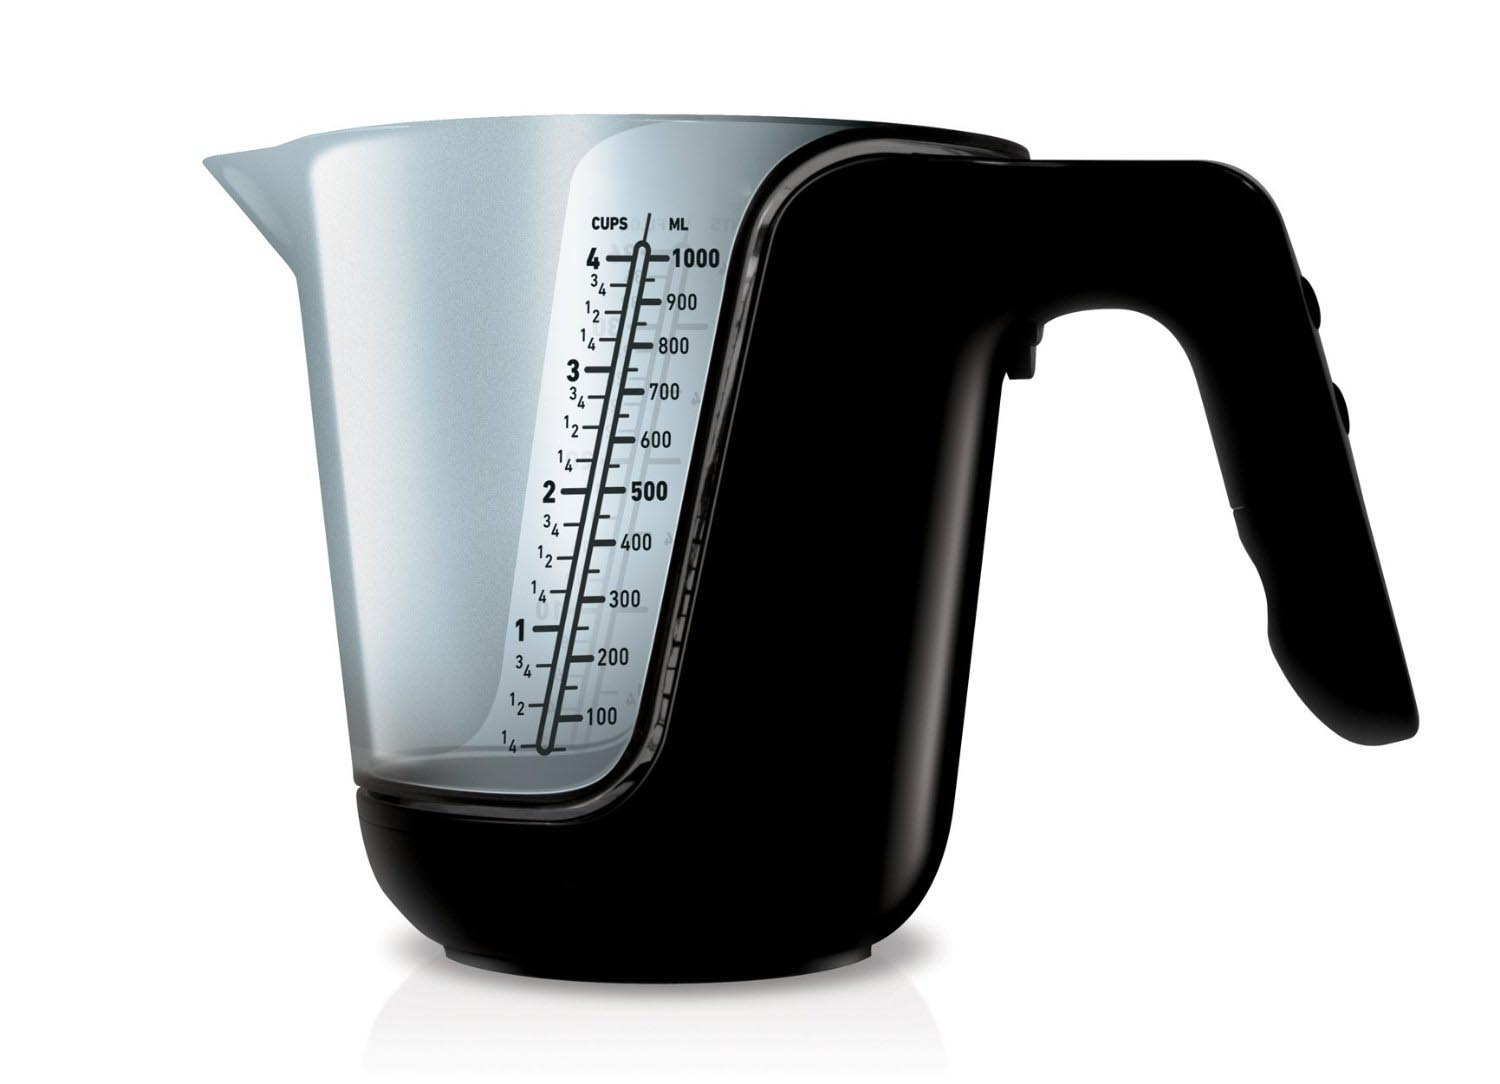 Basic volume conversions errens kitchen volume conversions for measuring liquids in us cups ounces and milliliters universal nvjuhfo Images